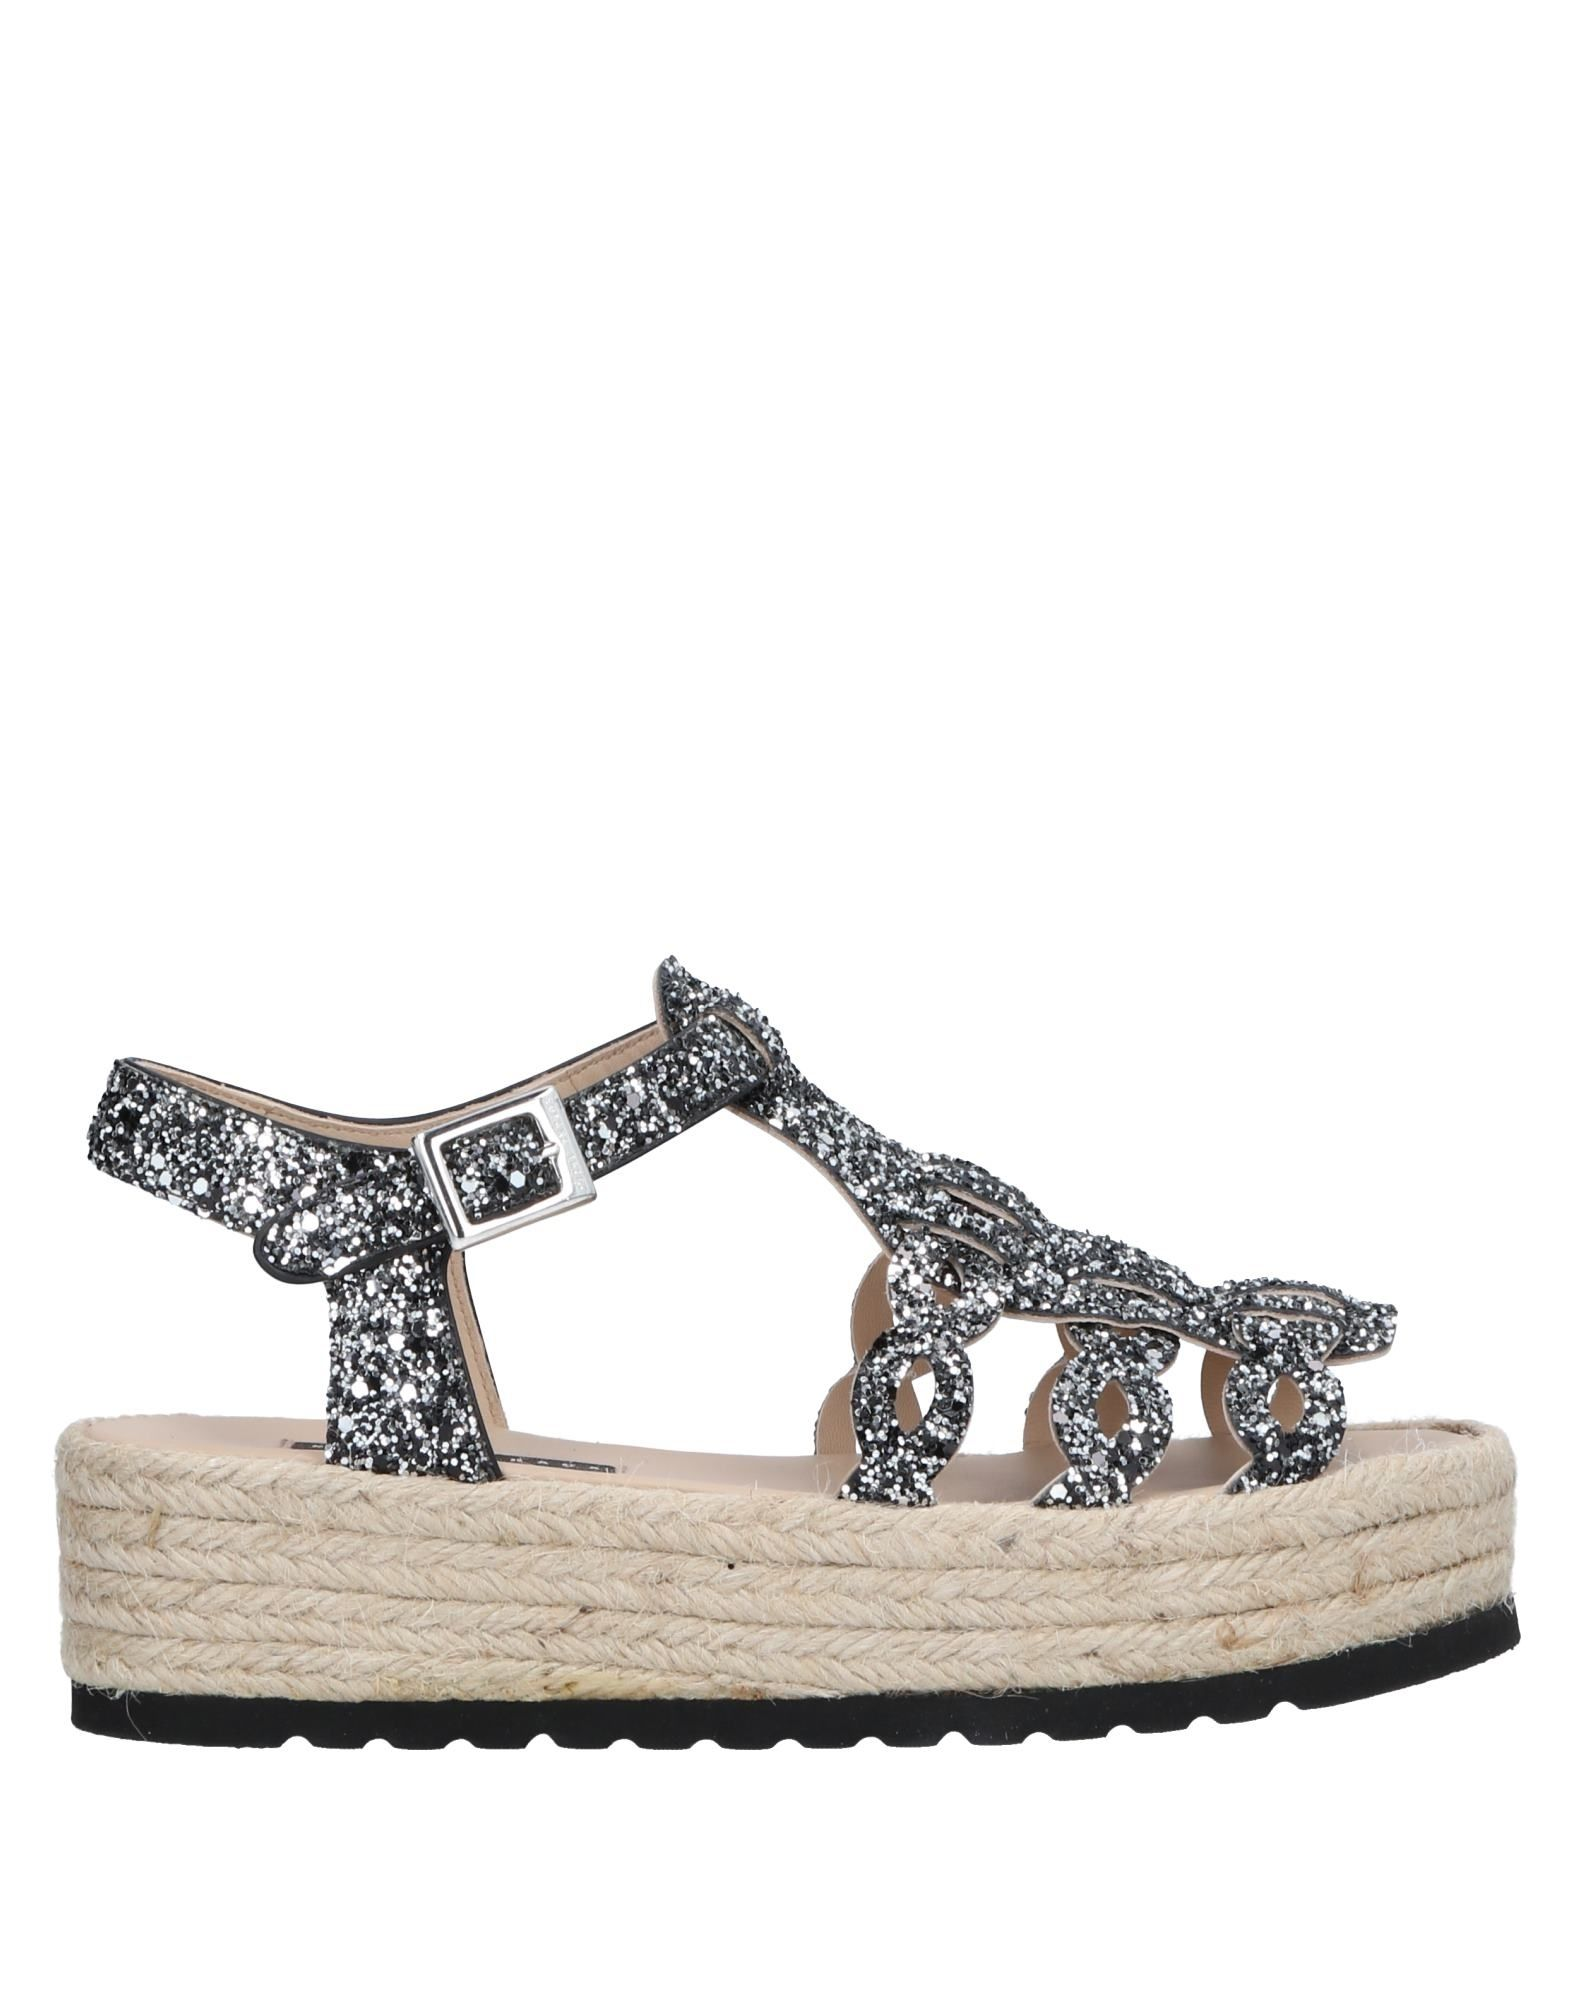 Susana Susana Traca Sandals - Women Susana Susana Traca Sandals online on  United Kingdom - 11515909CL 76acd7